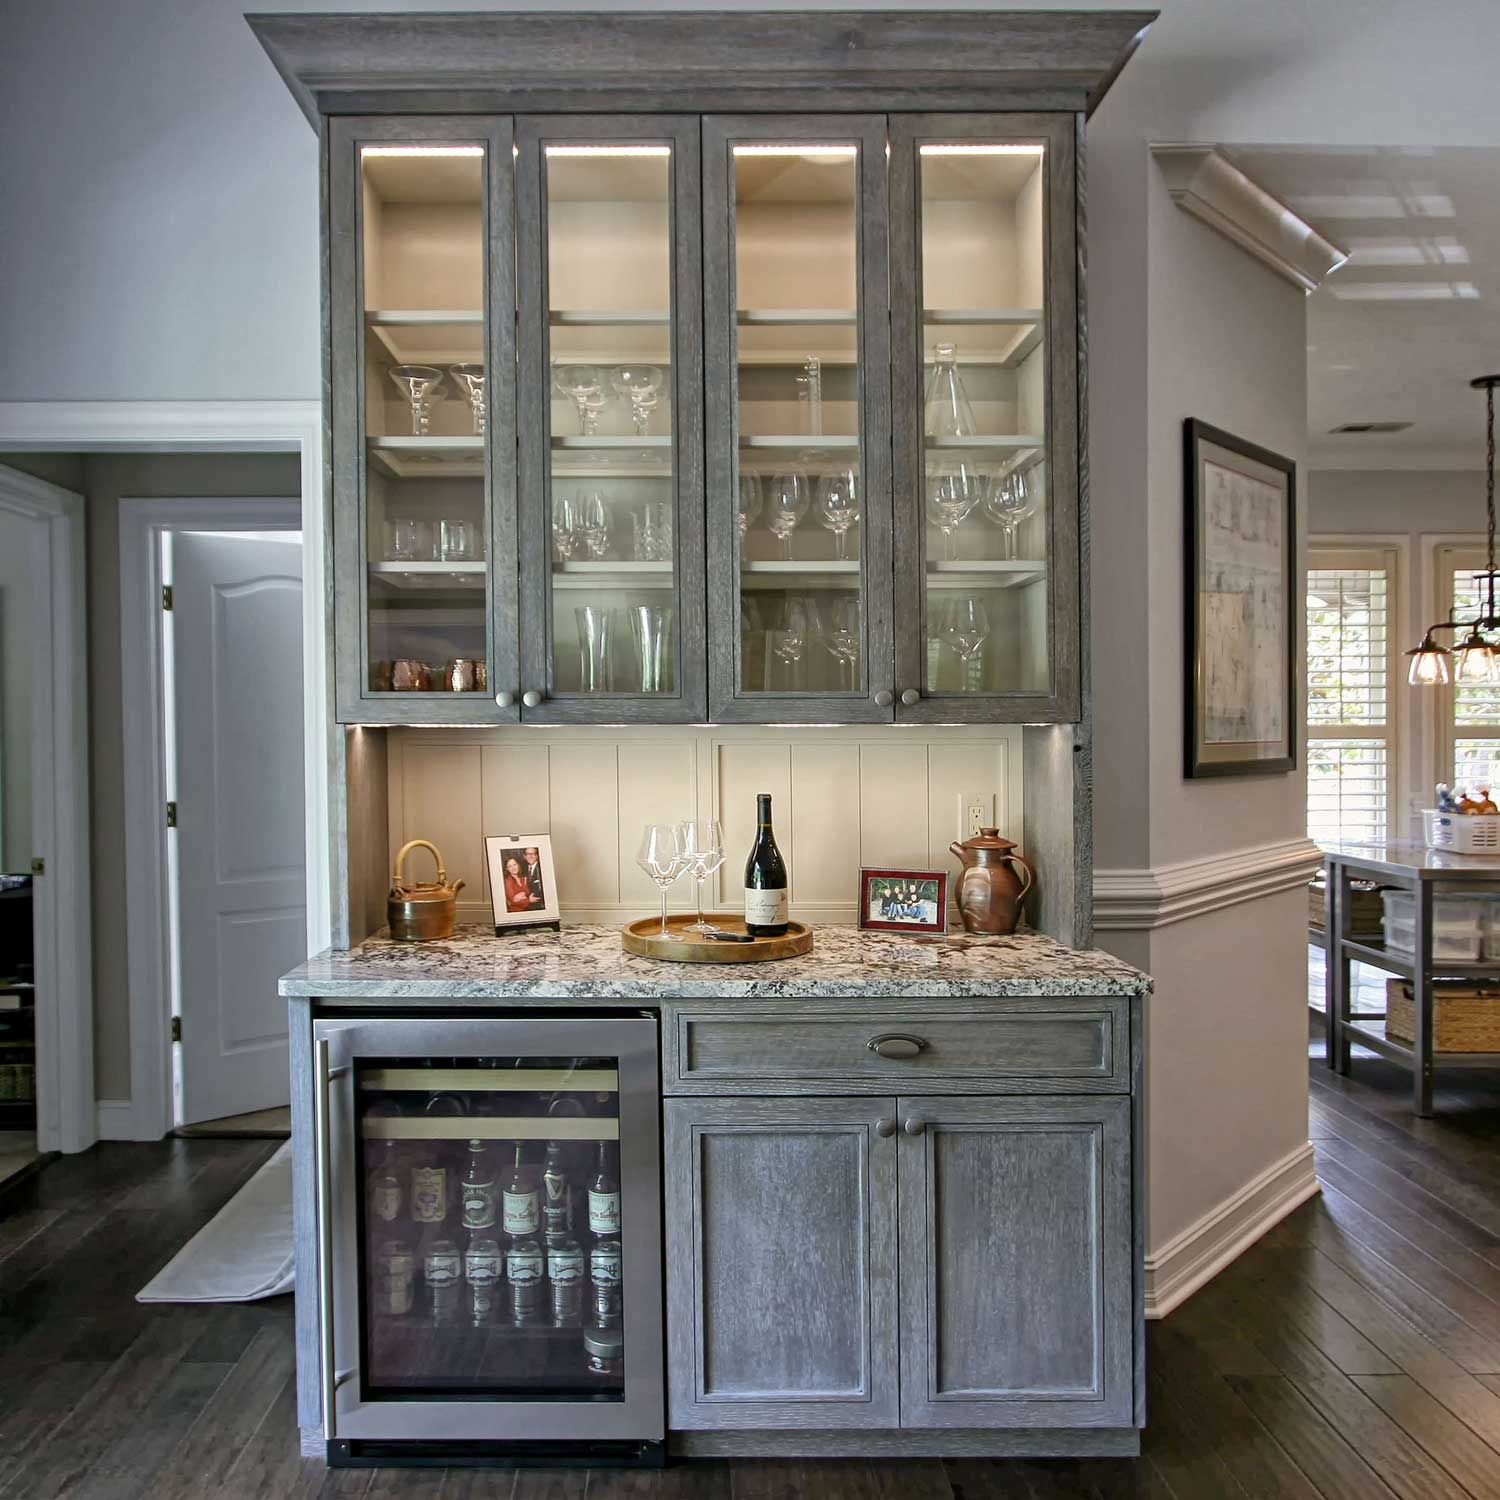 Oak Is Making A Comeback. See How This Kitchen Remodel